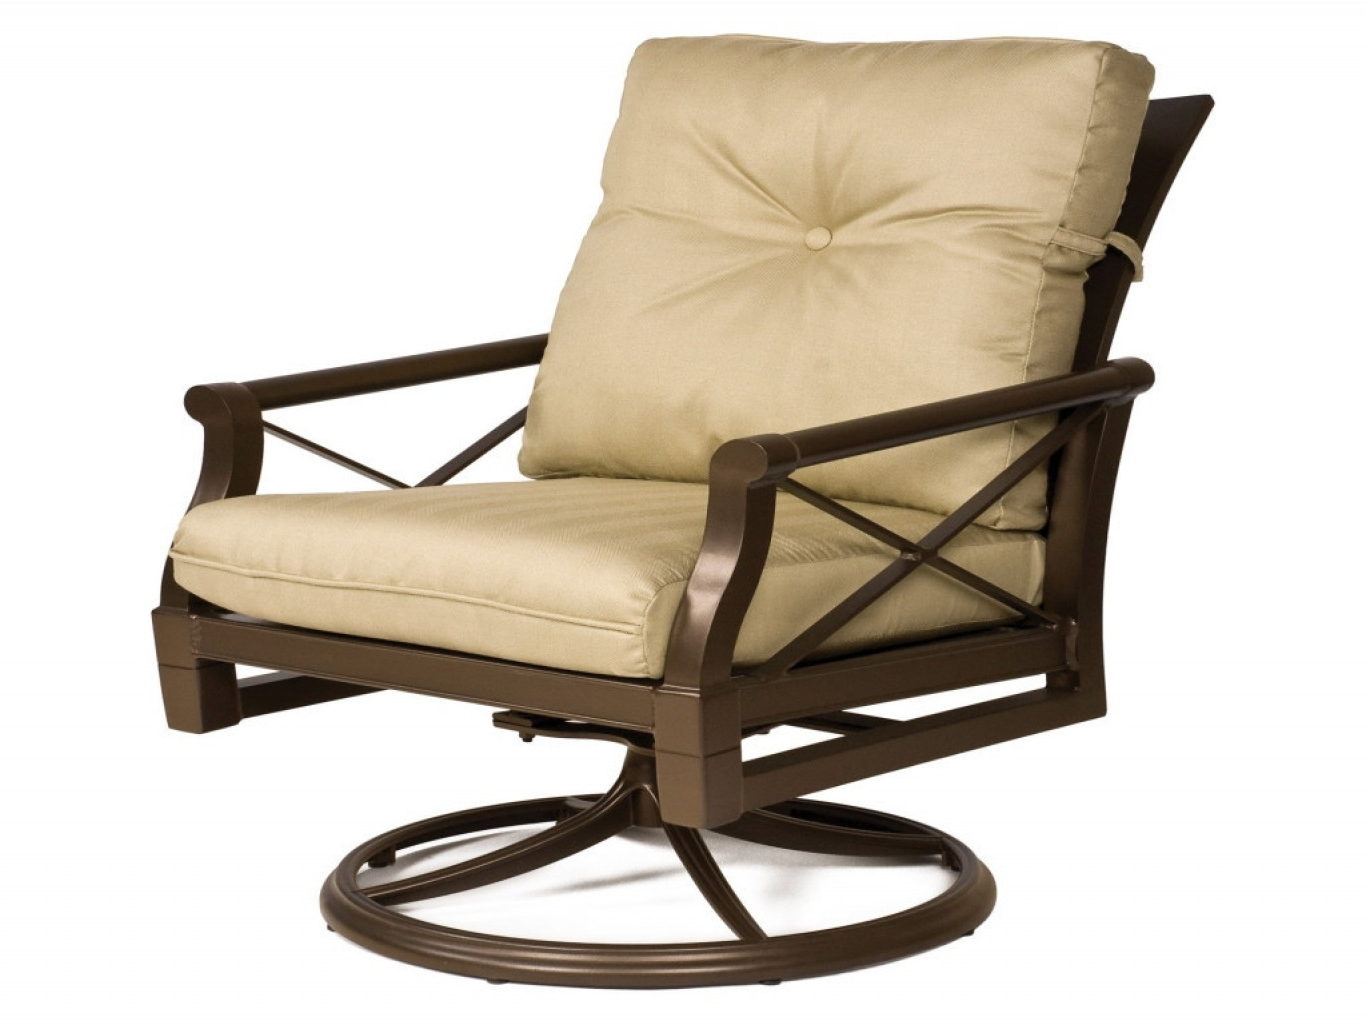 Overstock Outdoor Chaise Lounge Chairs With Regard To Most Popular Outdoor Chaise Lounge Chairs Ikea Transitional Swivel Chairs (View 9 of 15)